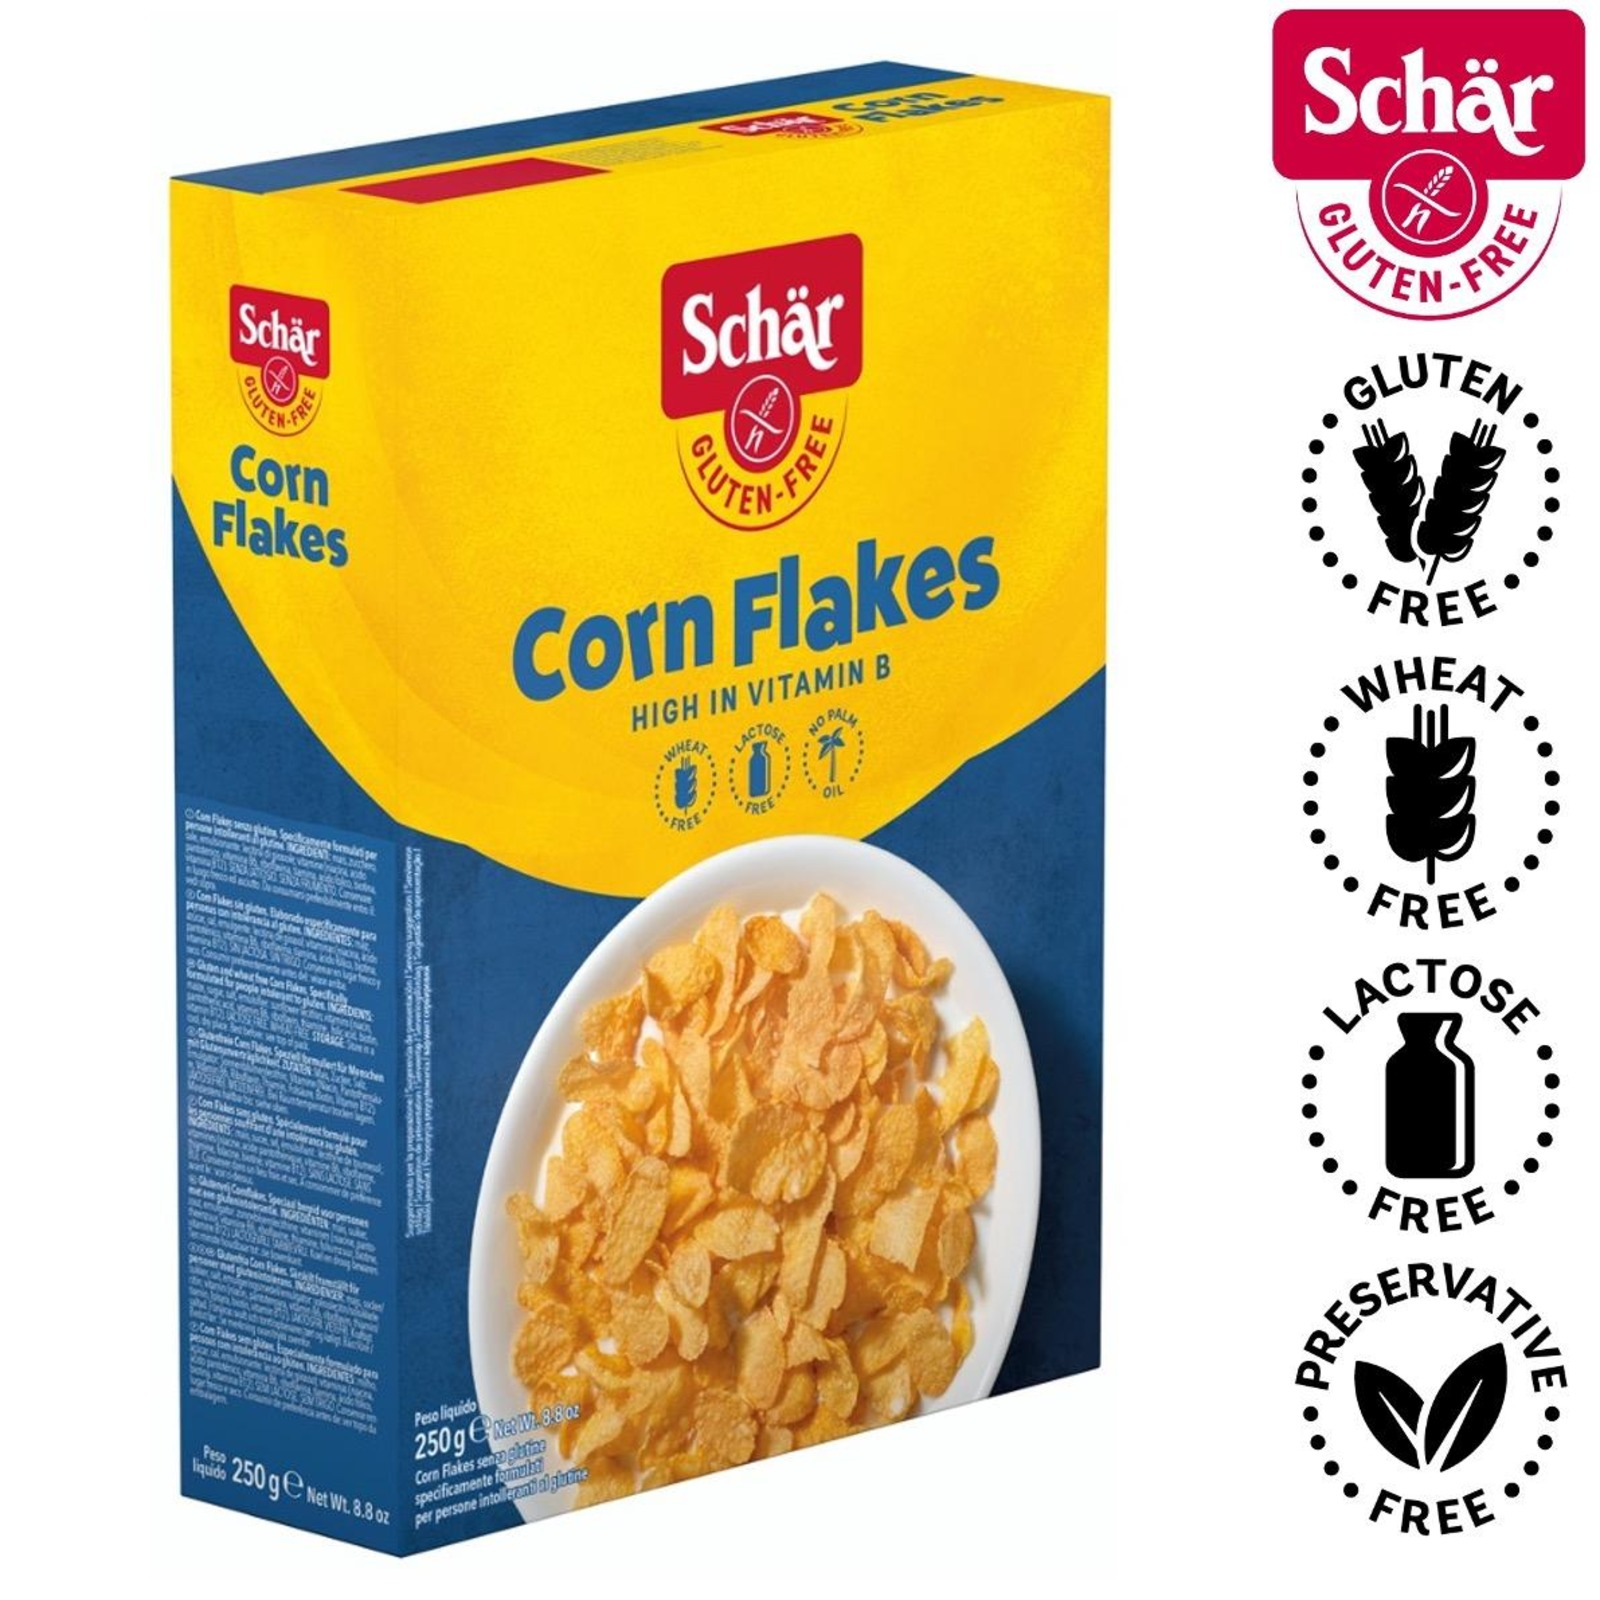 Dr. Schar Corn Flakes Breakfast Cereal - Gluten Free by Agora Products